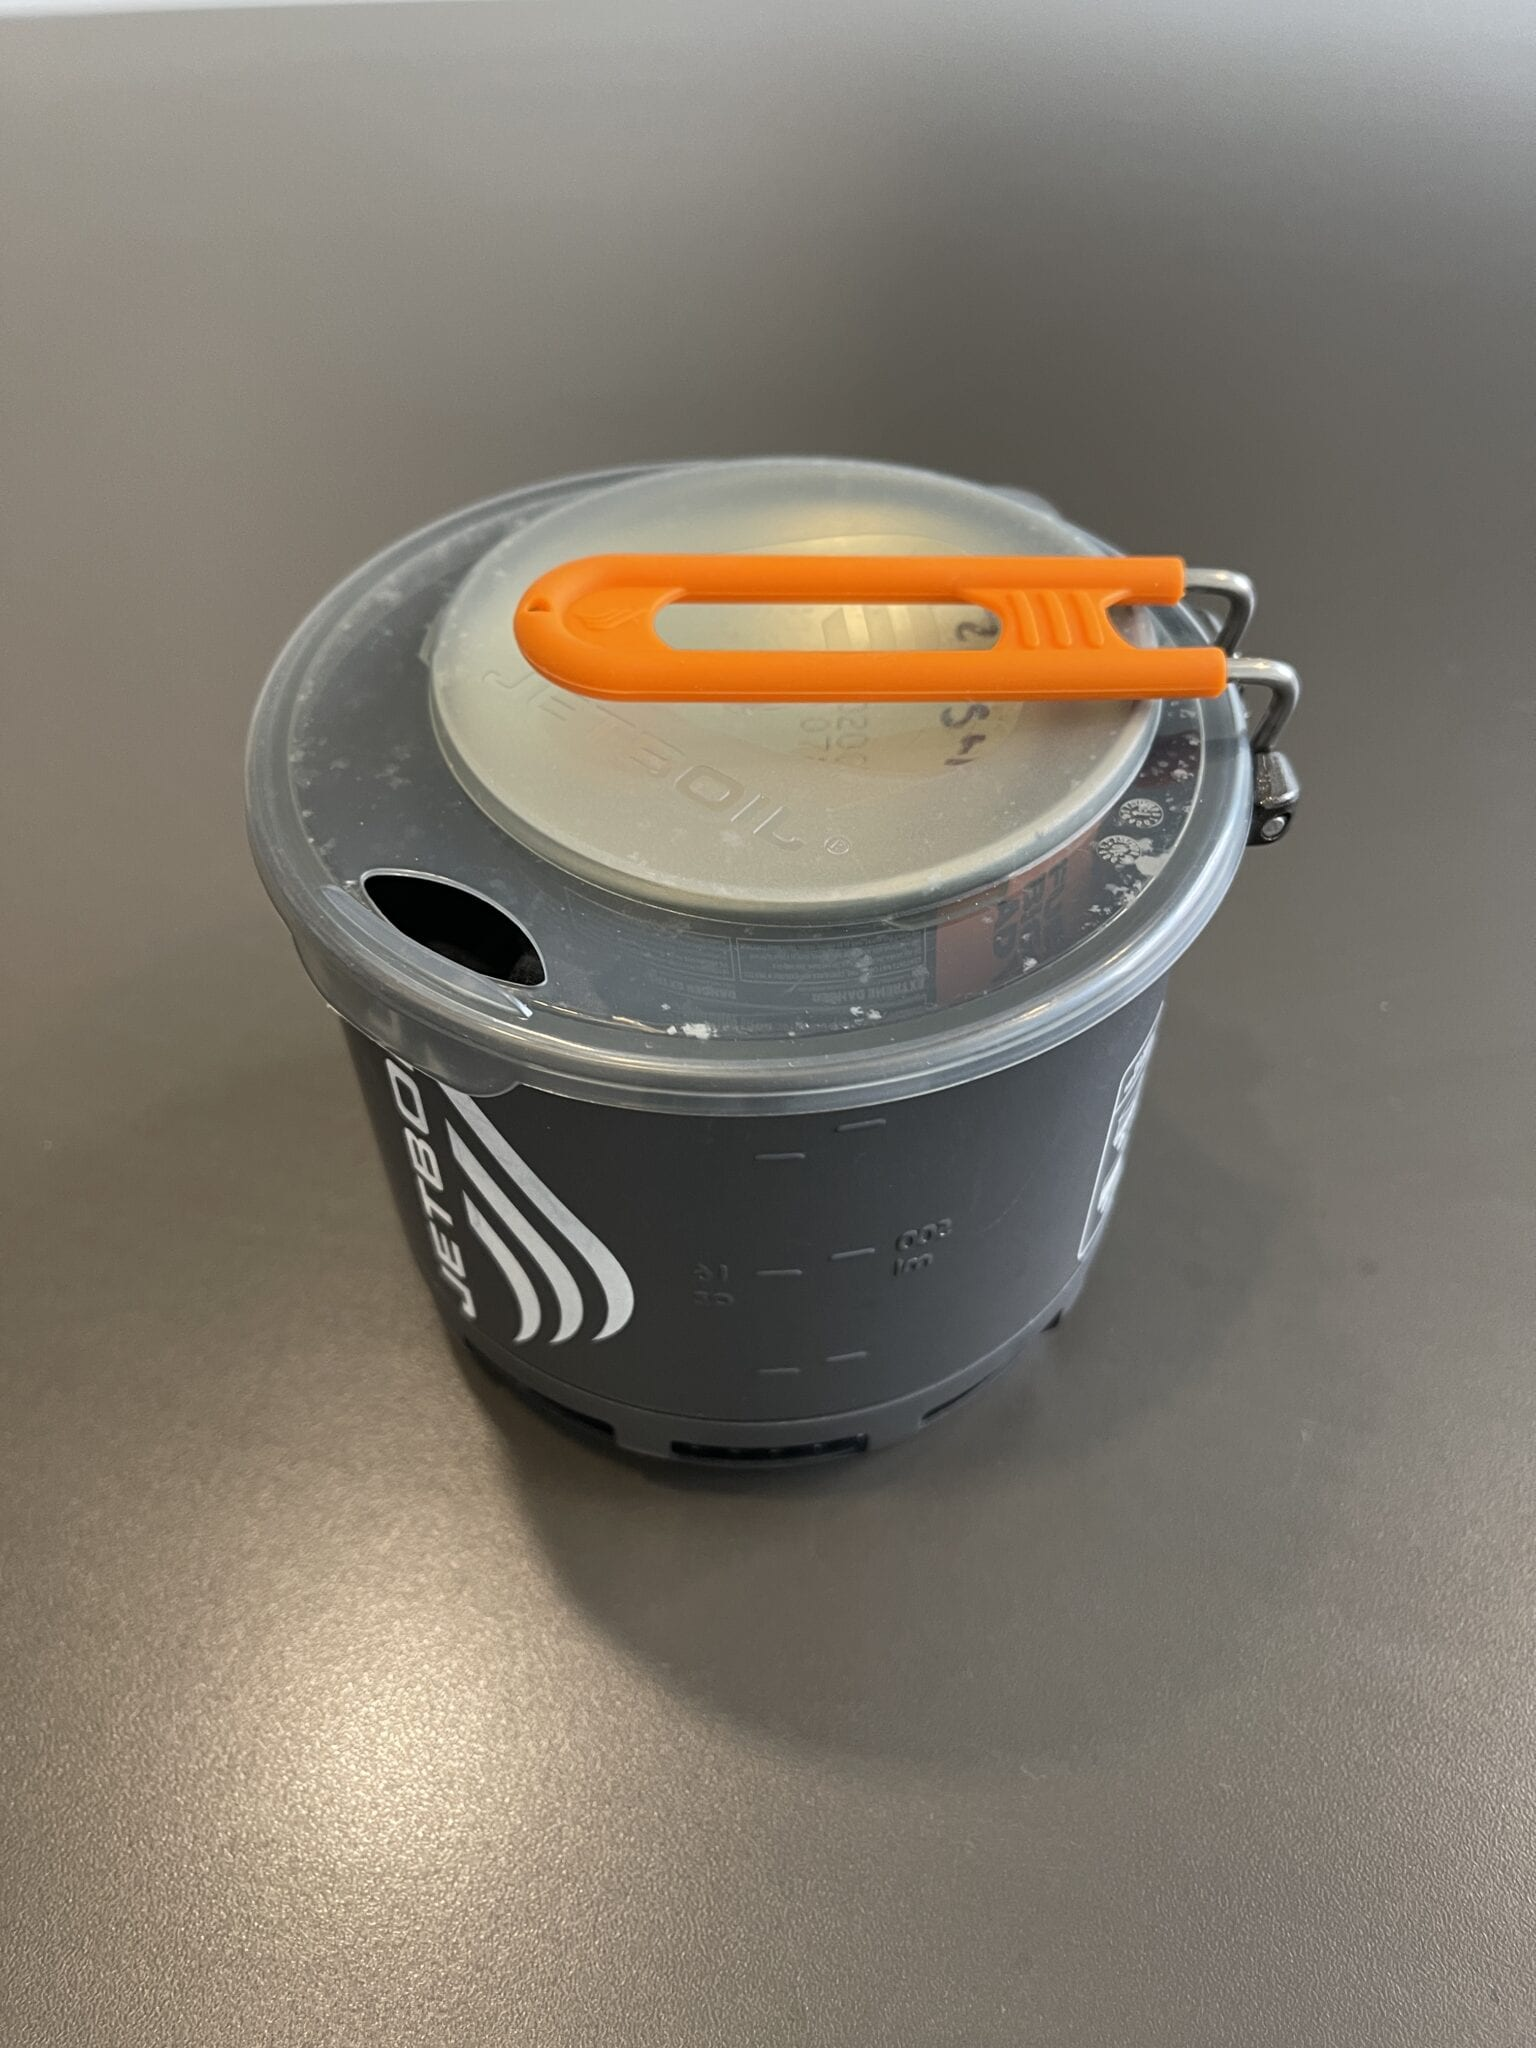 The Jetboil Stash stove system packed into the cooking pot.